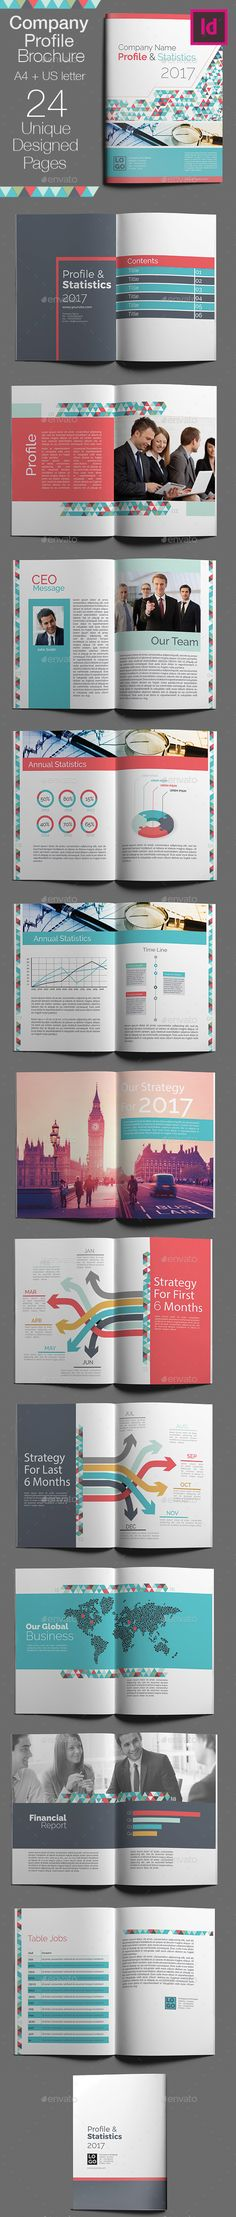 Company Brochure Template InDesign INDD - 24 Unique Designed Pages, A4 + US Letter Size